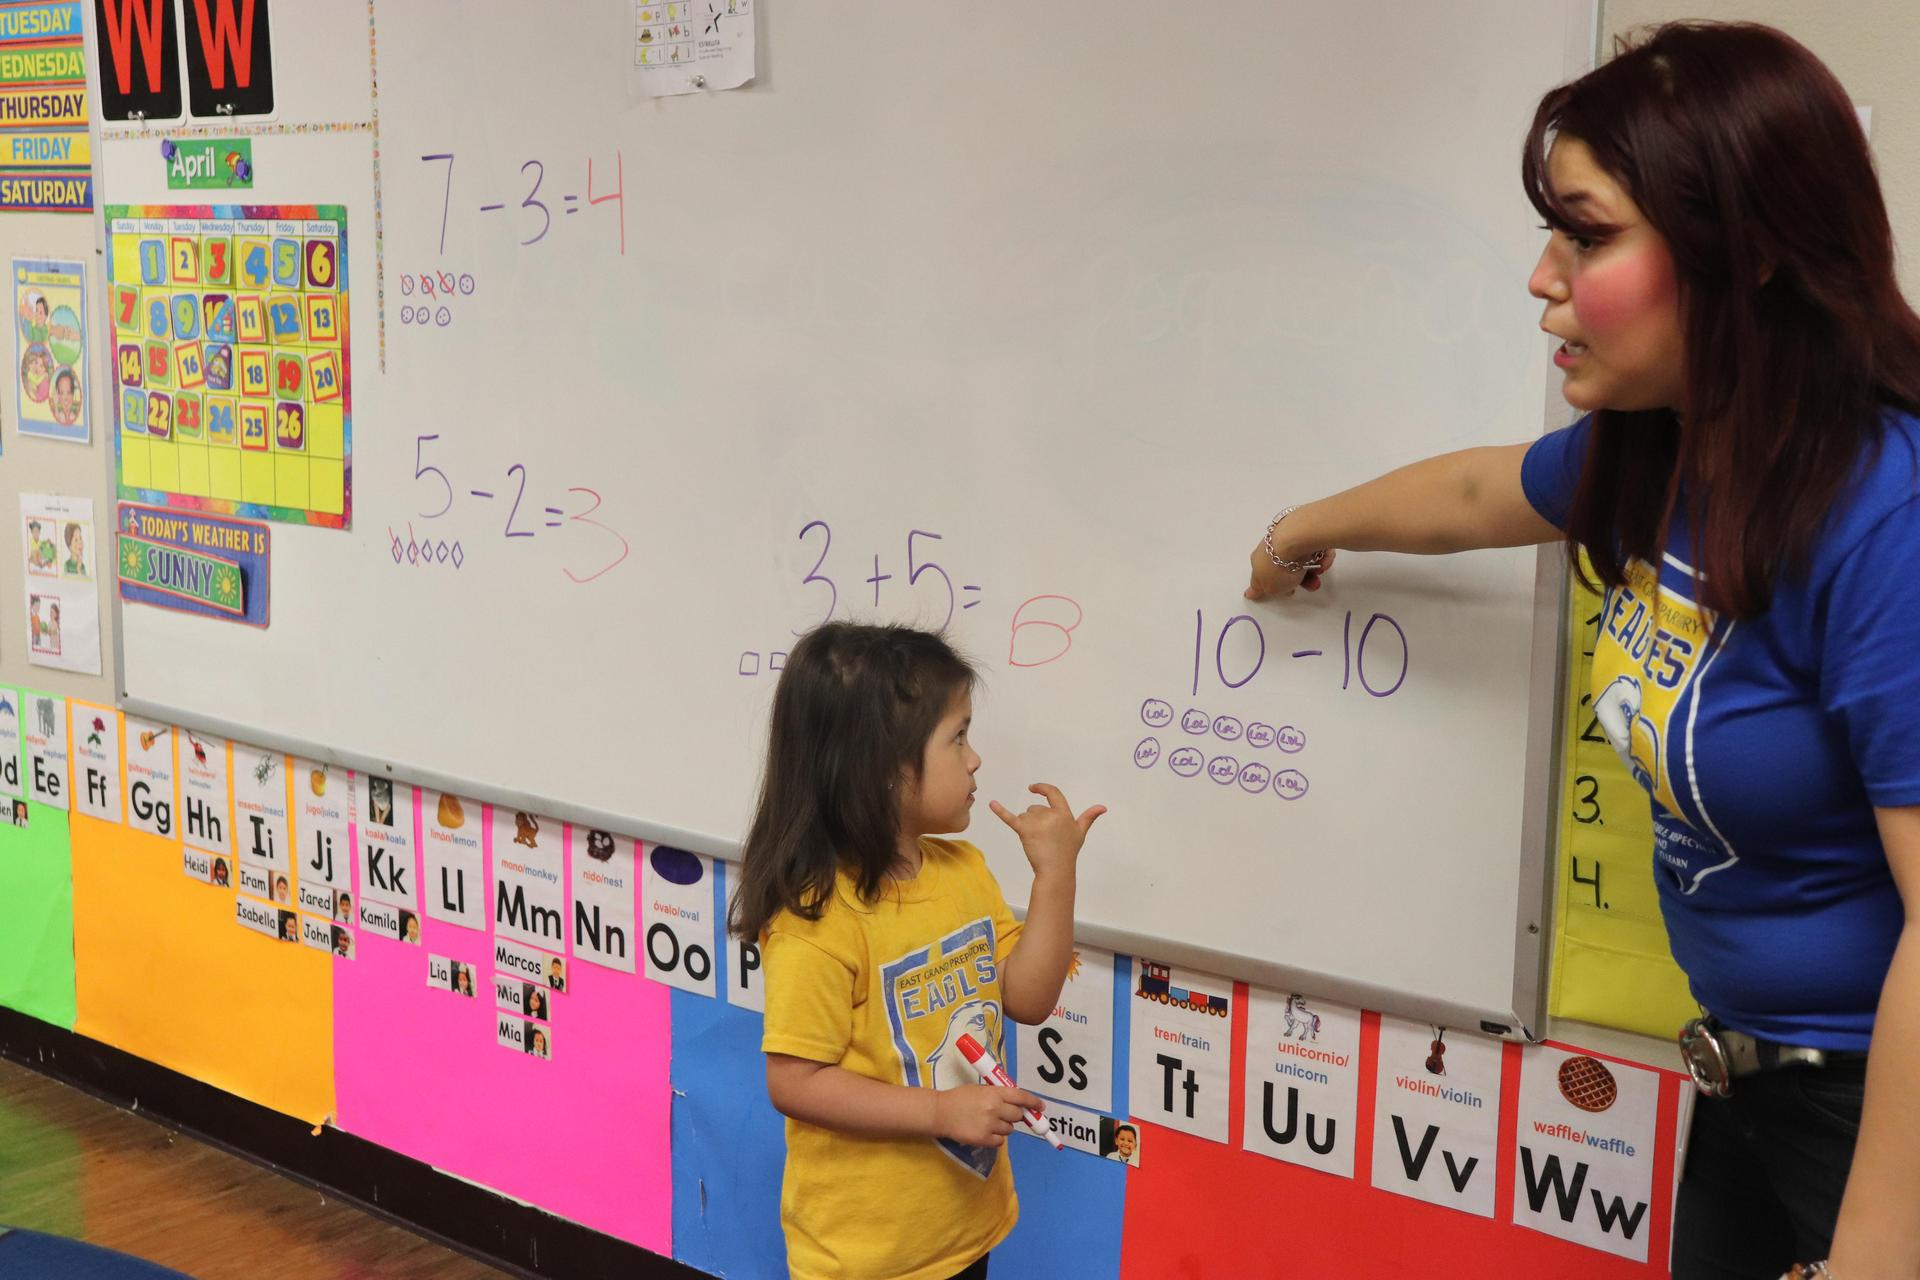 PreK teacher teaching math